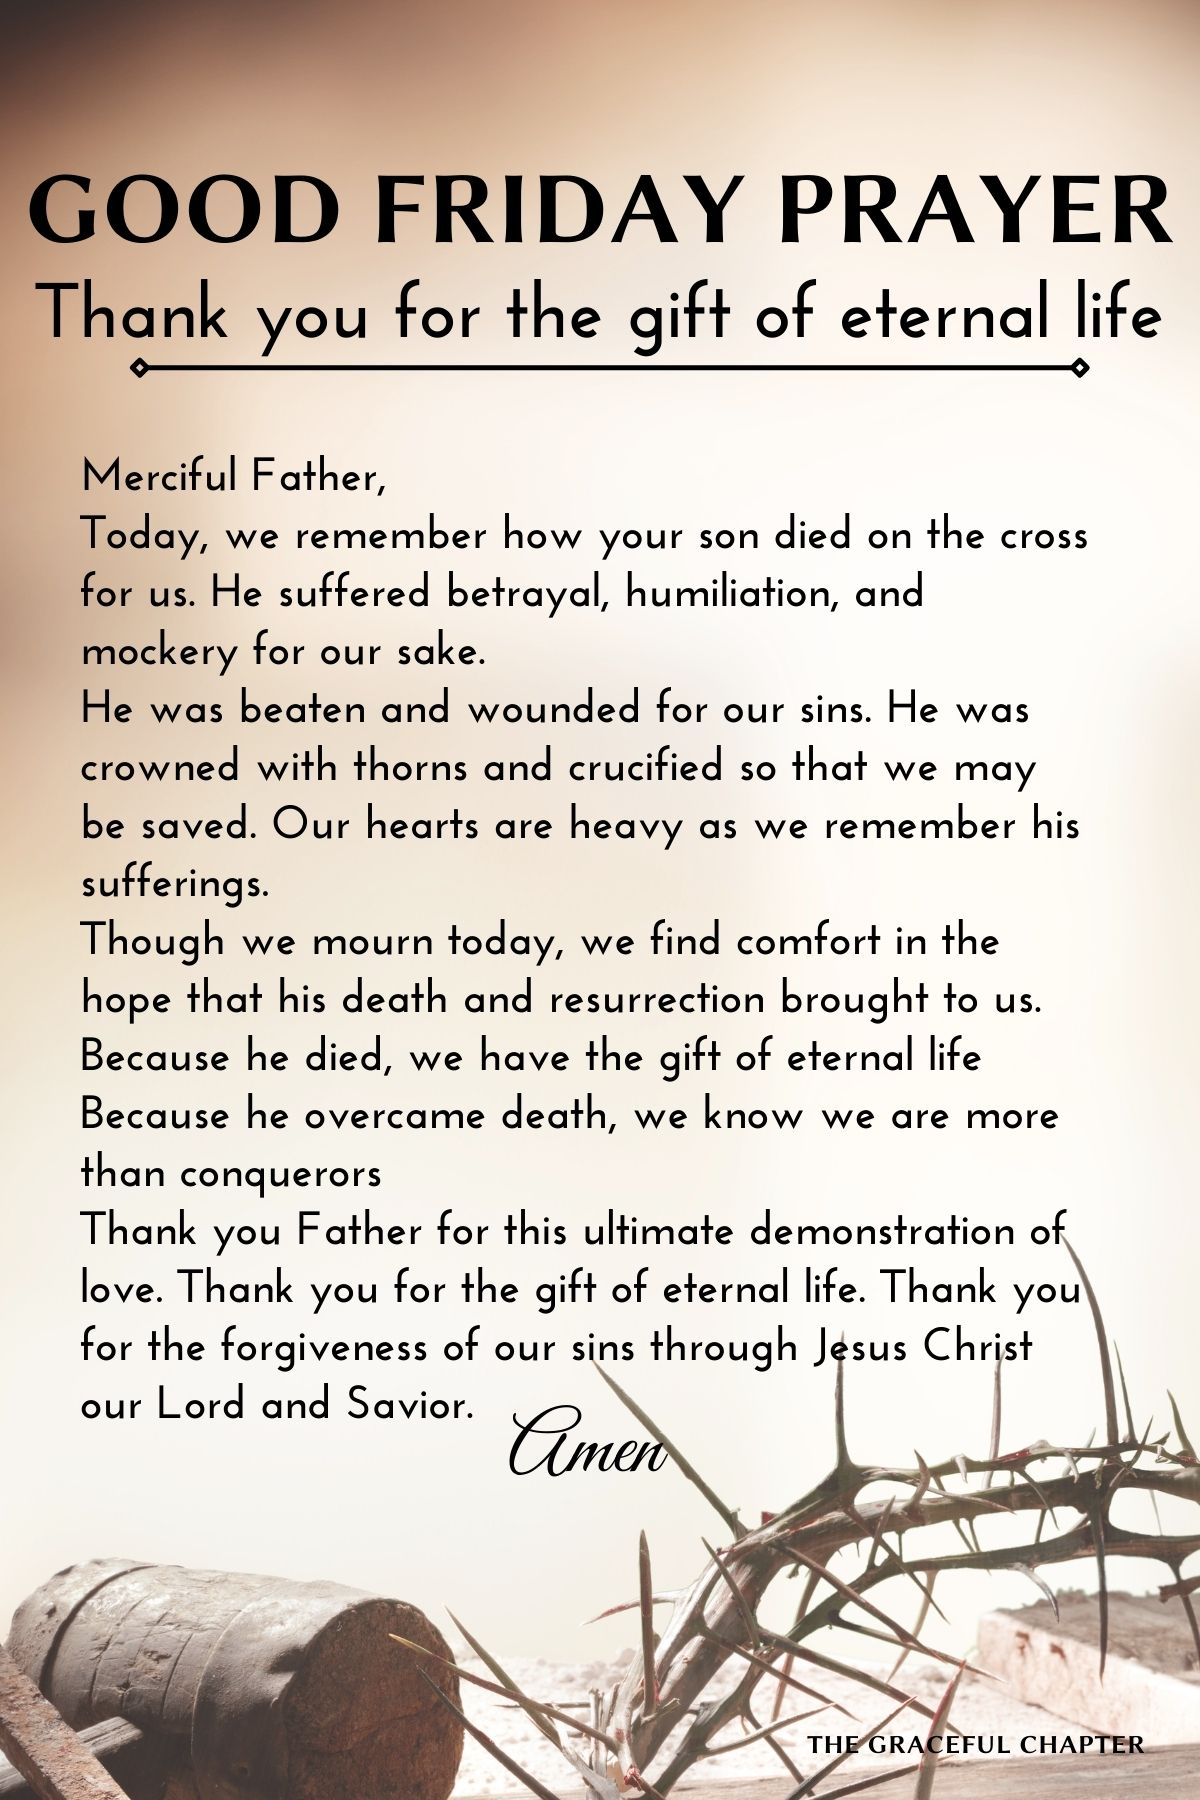 Thank you for the gift of eternal life